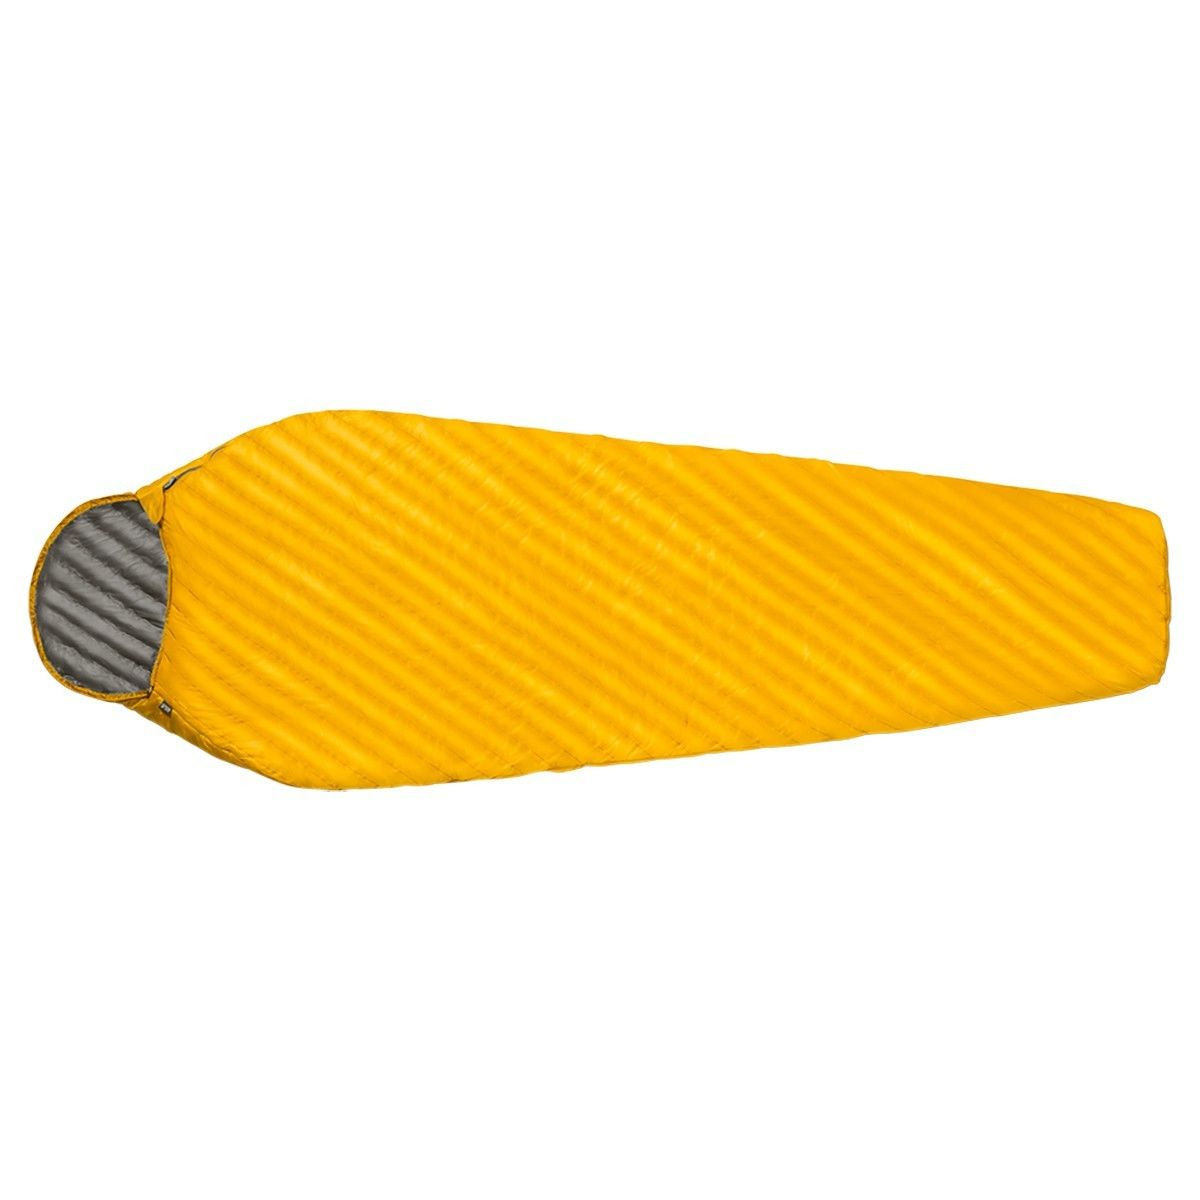 Jack Wolfskin Airflake 0 Large Gelb, 225 cm -RV links -Farbe Burly Yellow XT, 22